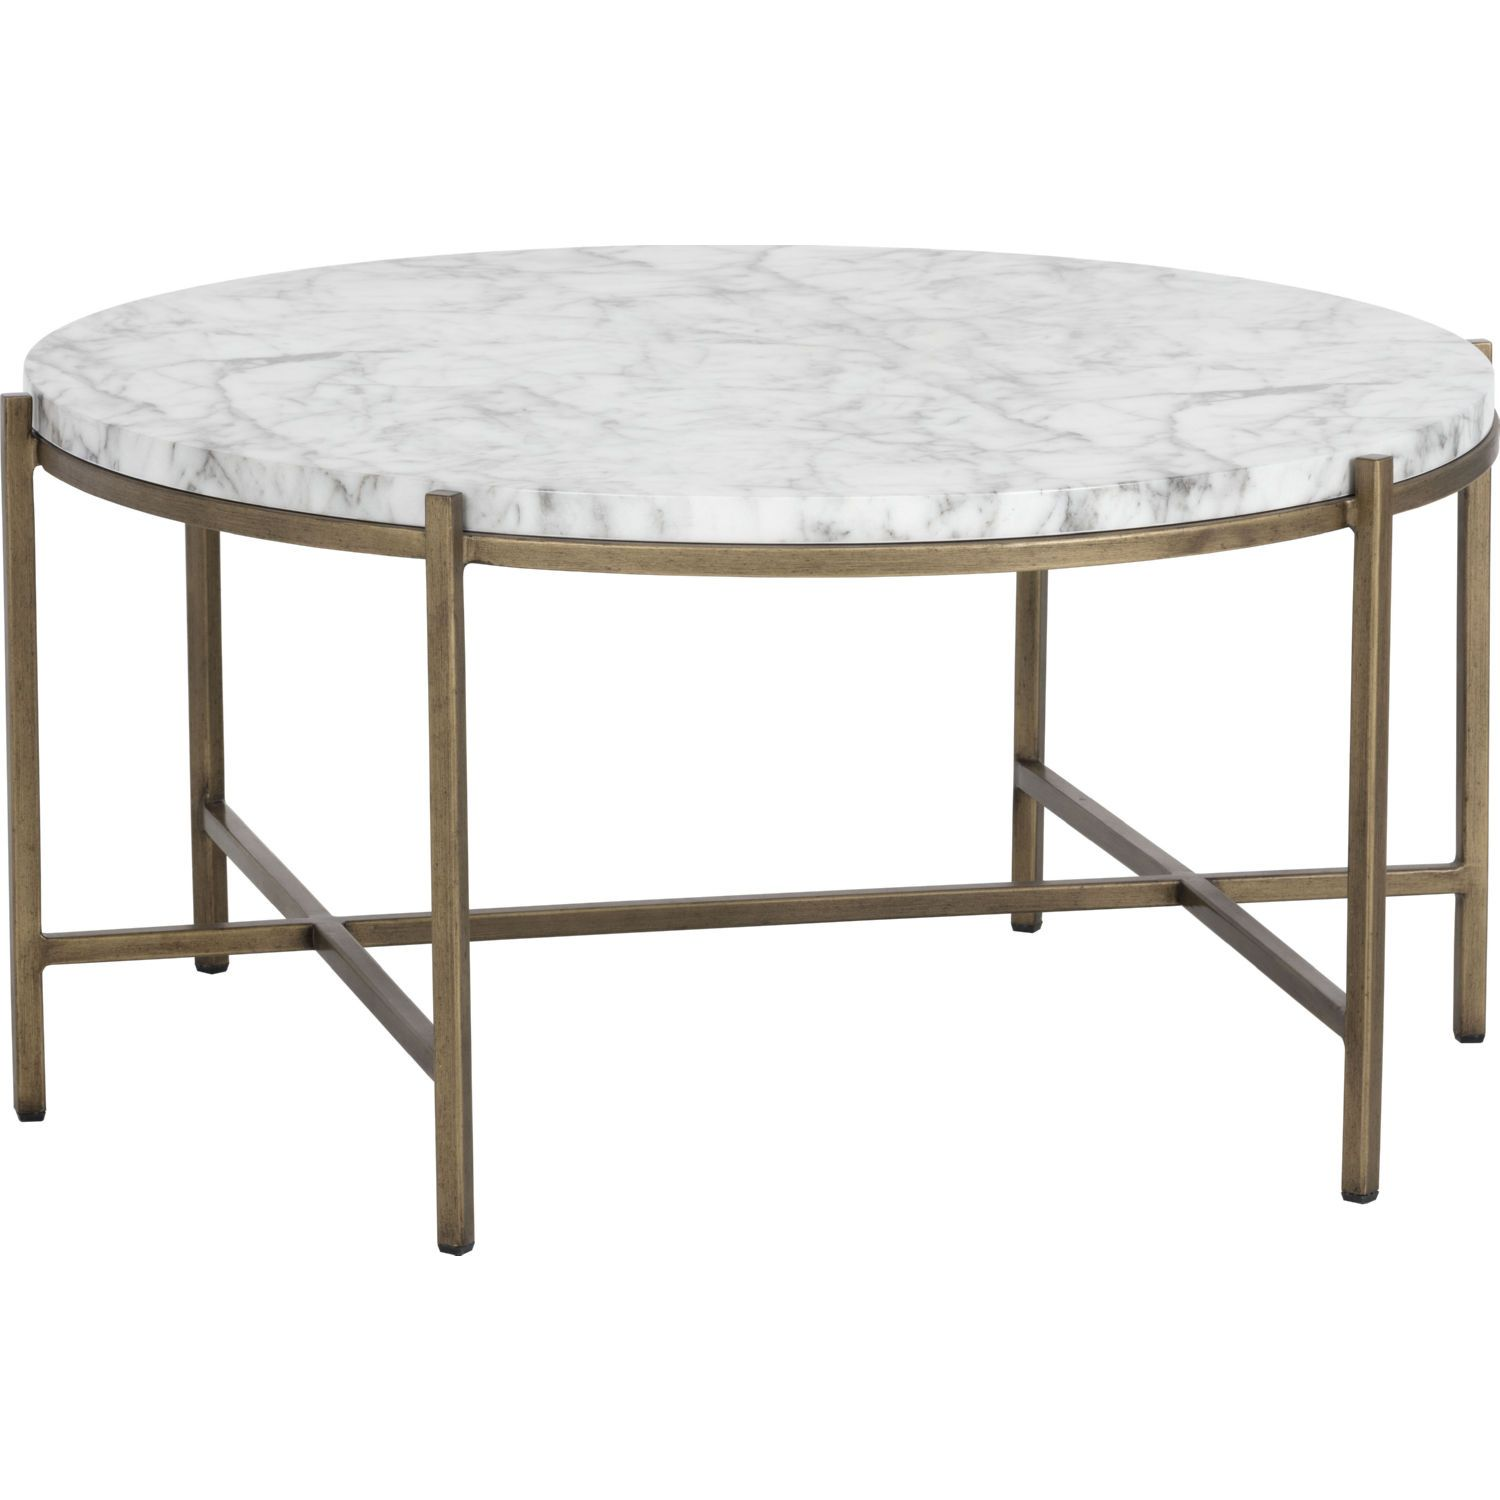 Kate Spade New York Marble Coffee Table White Brass Floor Sample Coffee Table Modern Furniture Decor Marble Top Coffee Table [ 1500 x 1500 Pixel ]